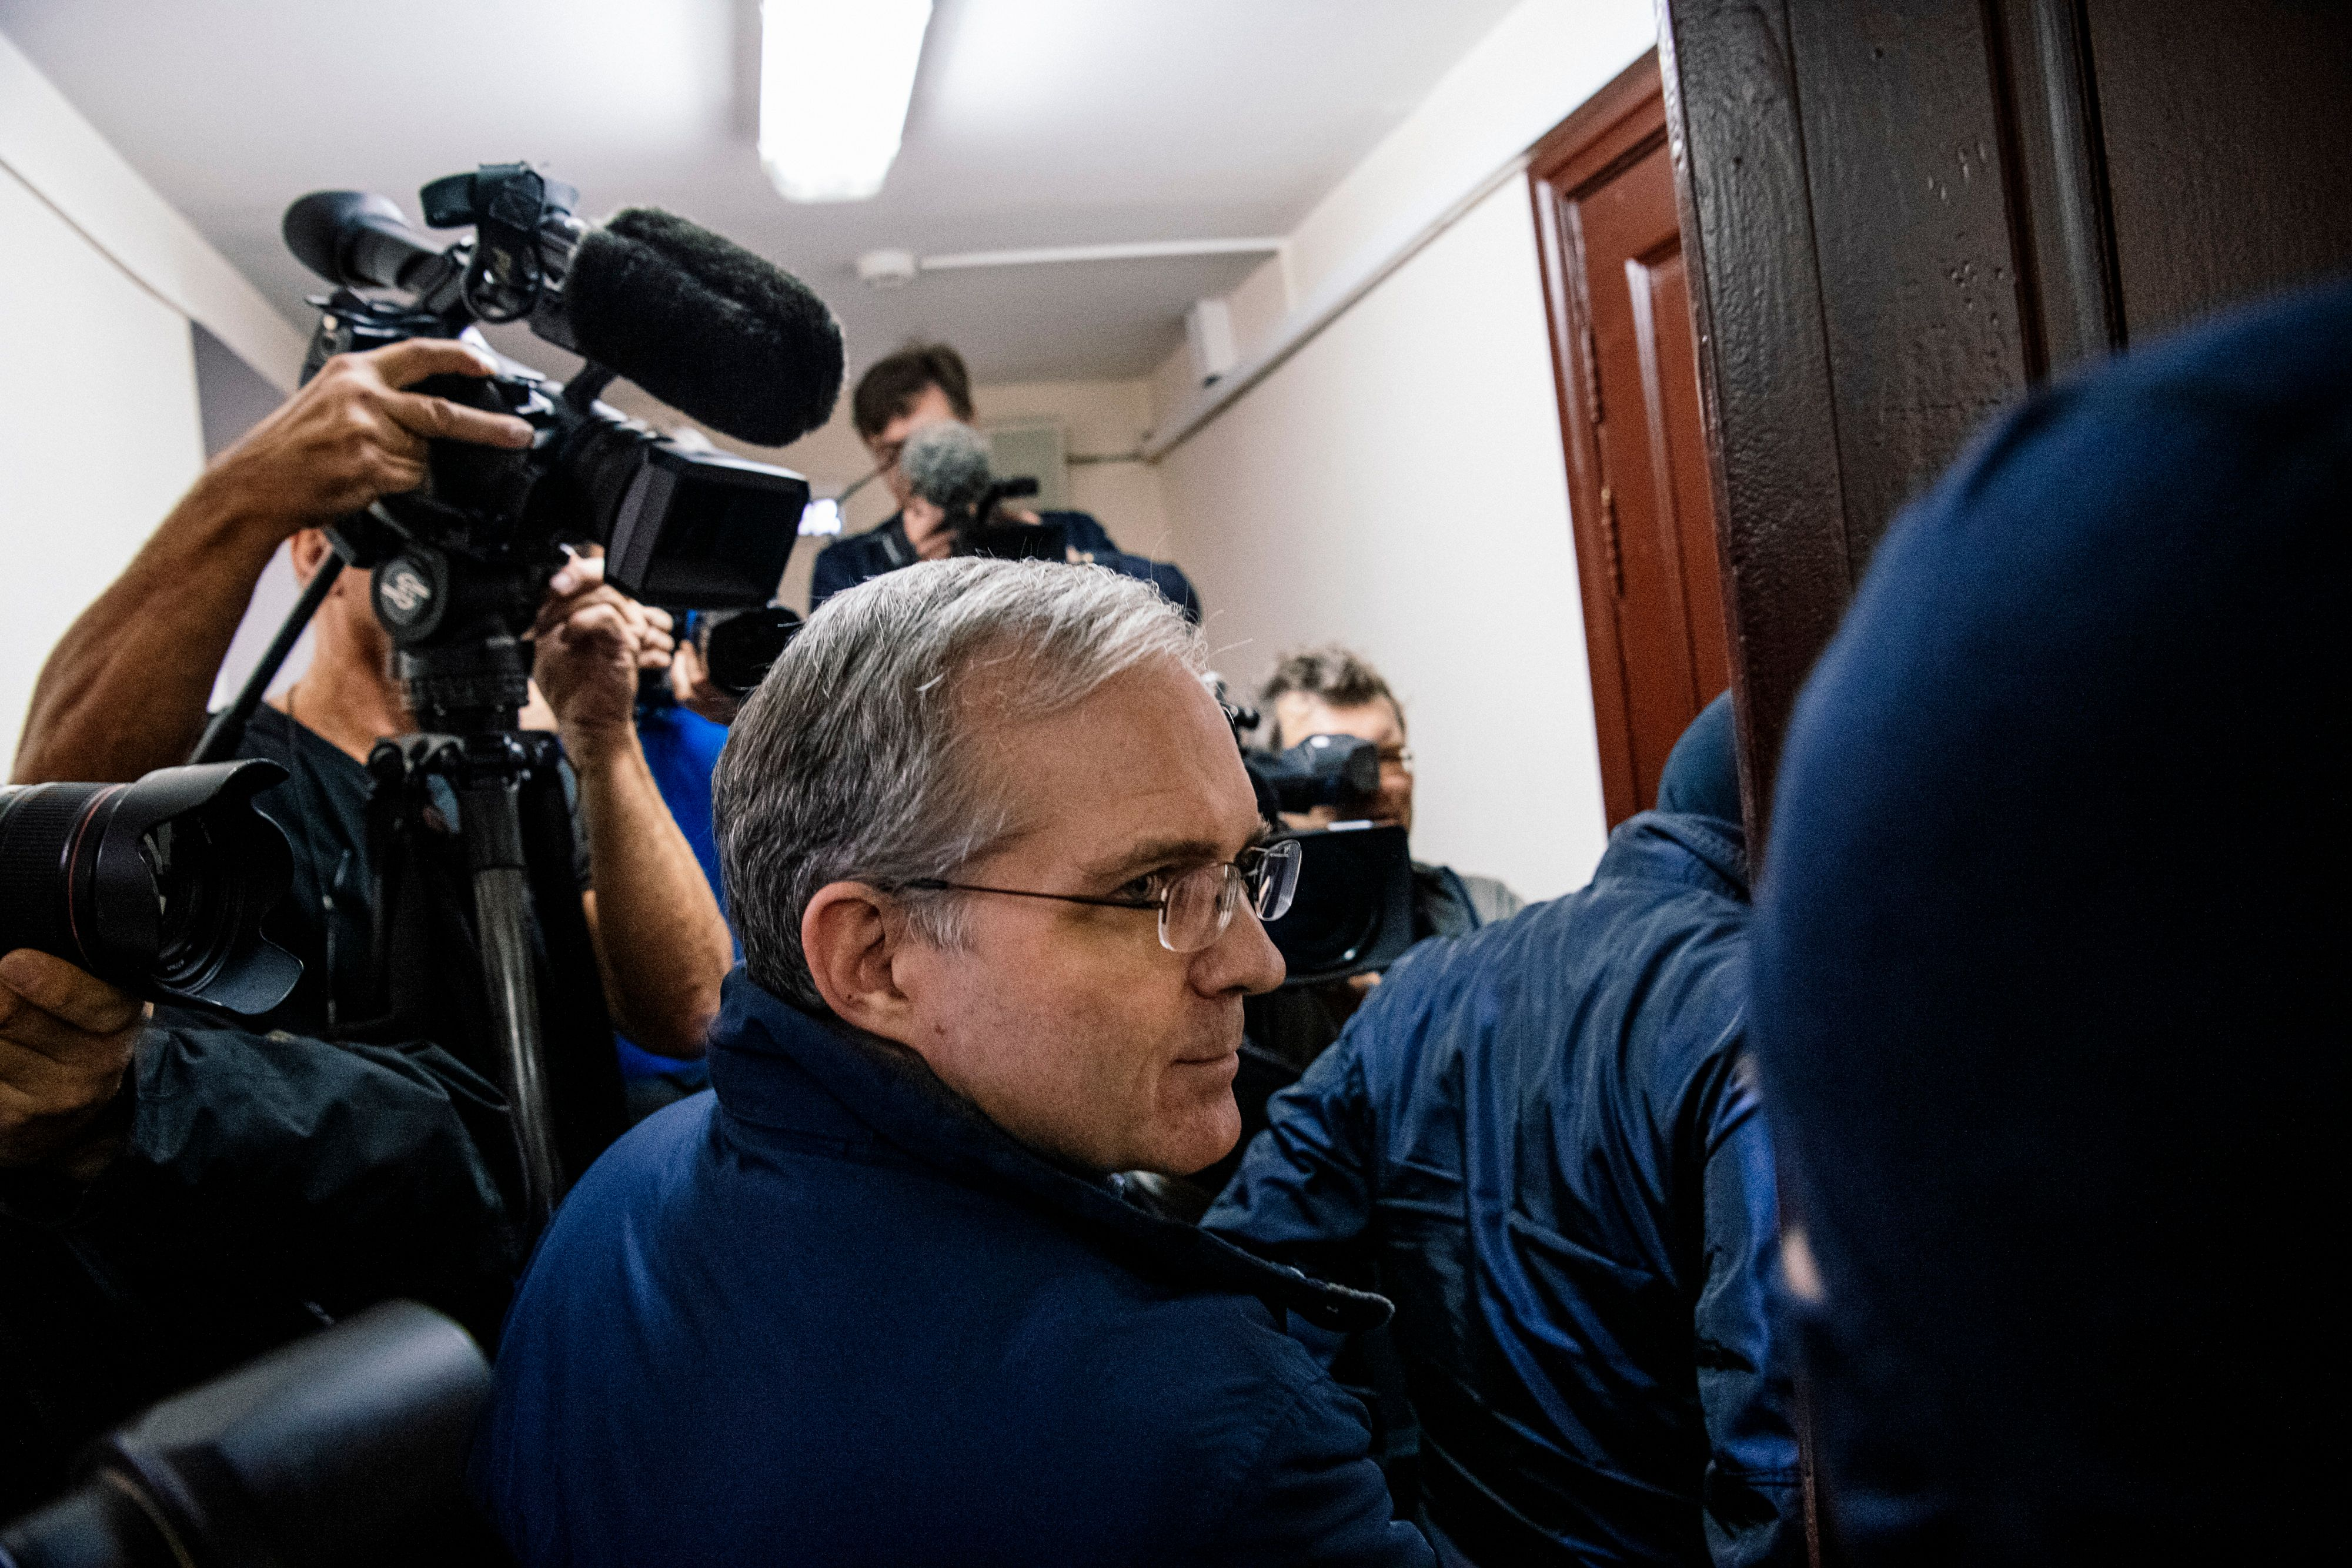 US-British Paul Whelan (C), a former US Marine accused of espionage and arrested in Russia in December 2018, is escorted for a hearing to decide to extend his detention at the Lefortovo Court in Moscow on October 24, 2019. (Photo by Dimitar Dilkoff/AFP via Getty Images)